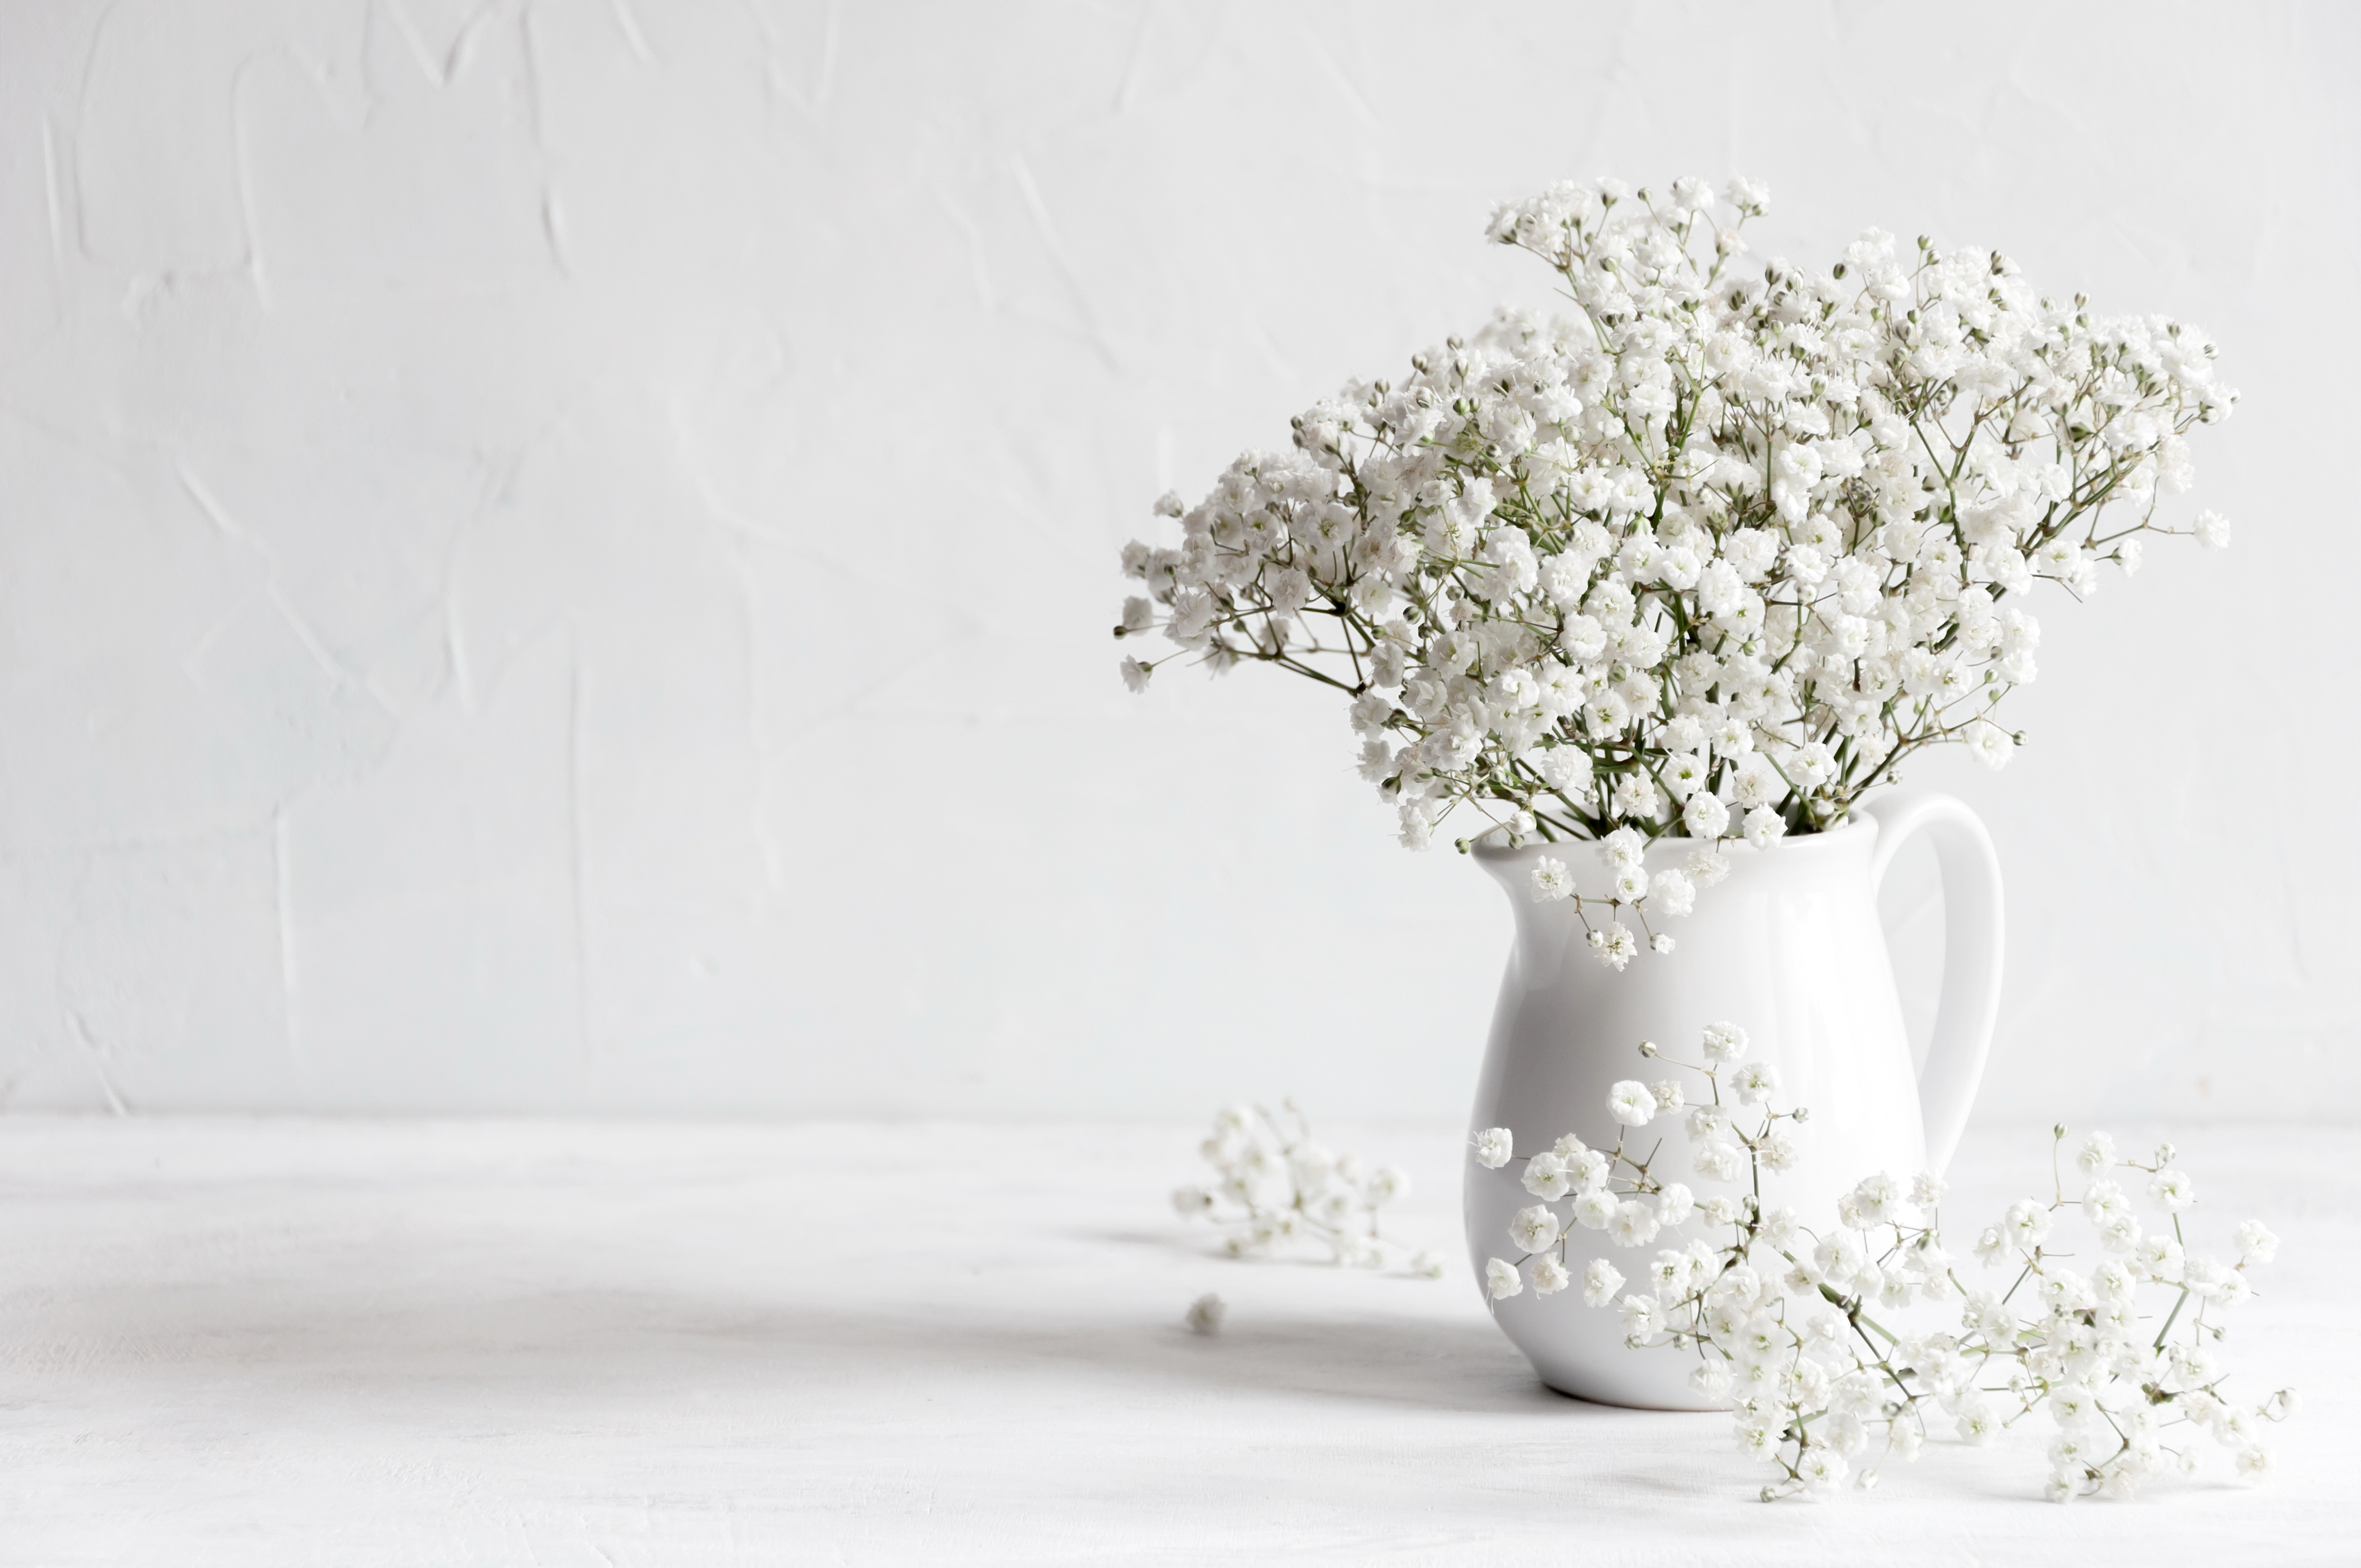 Soft home decor, white jug, vase with white small flowers on a white vintage wall background and on